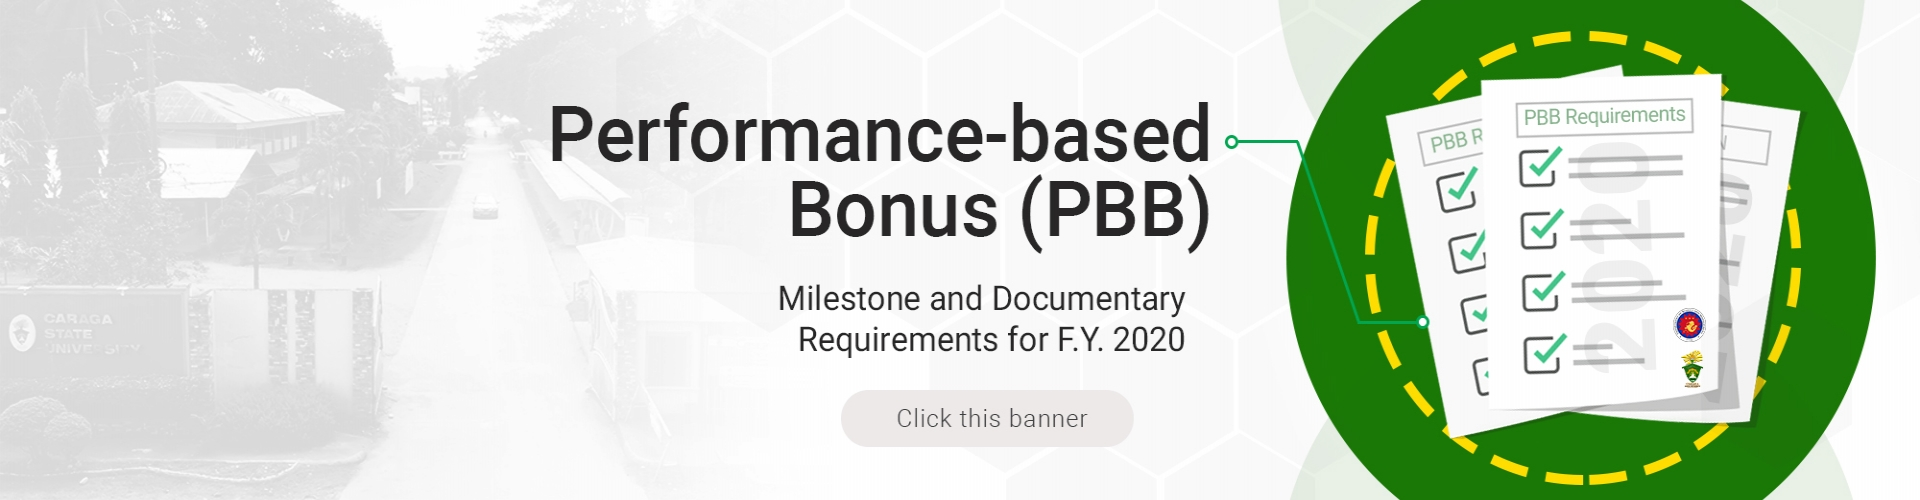 Performance-based Bonus (PBB) Milestone and Documentary Requirements for F.Y. 2020